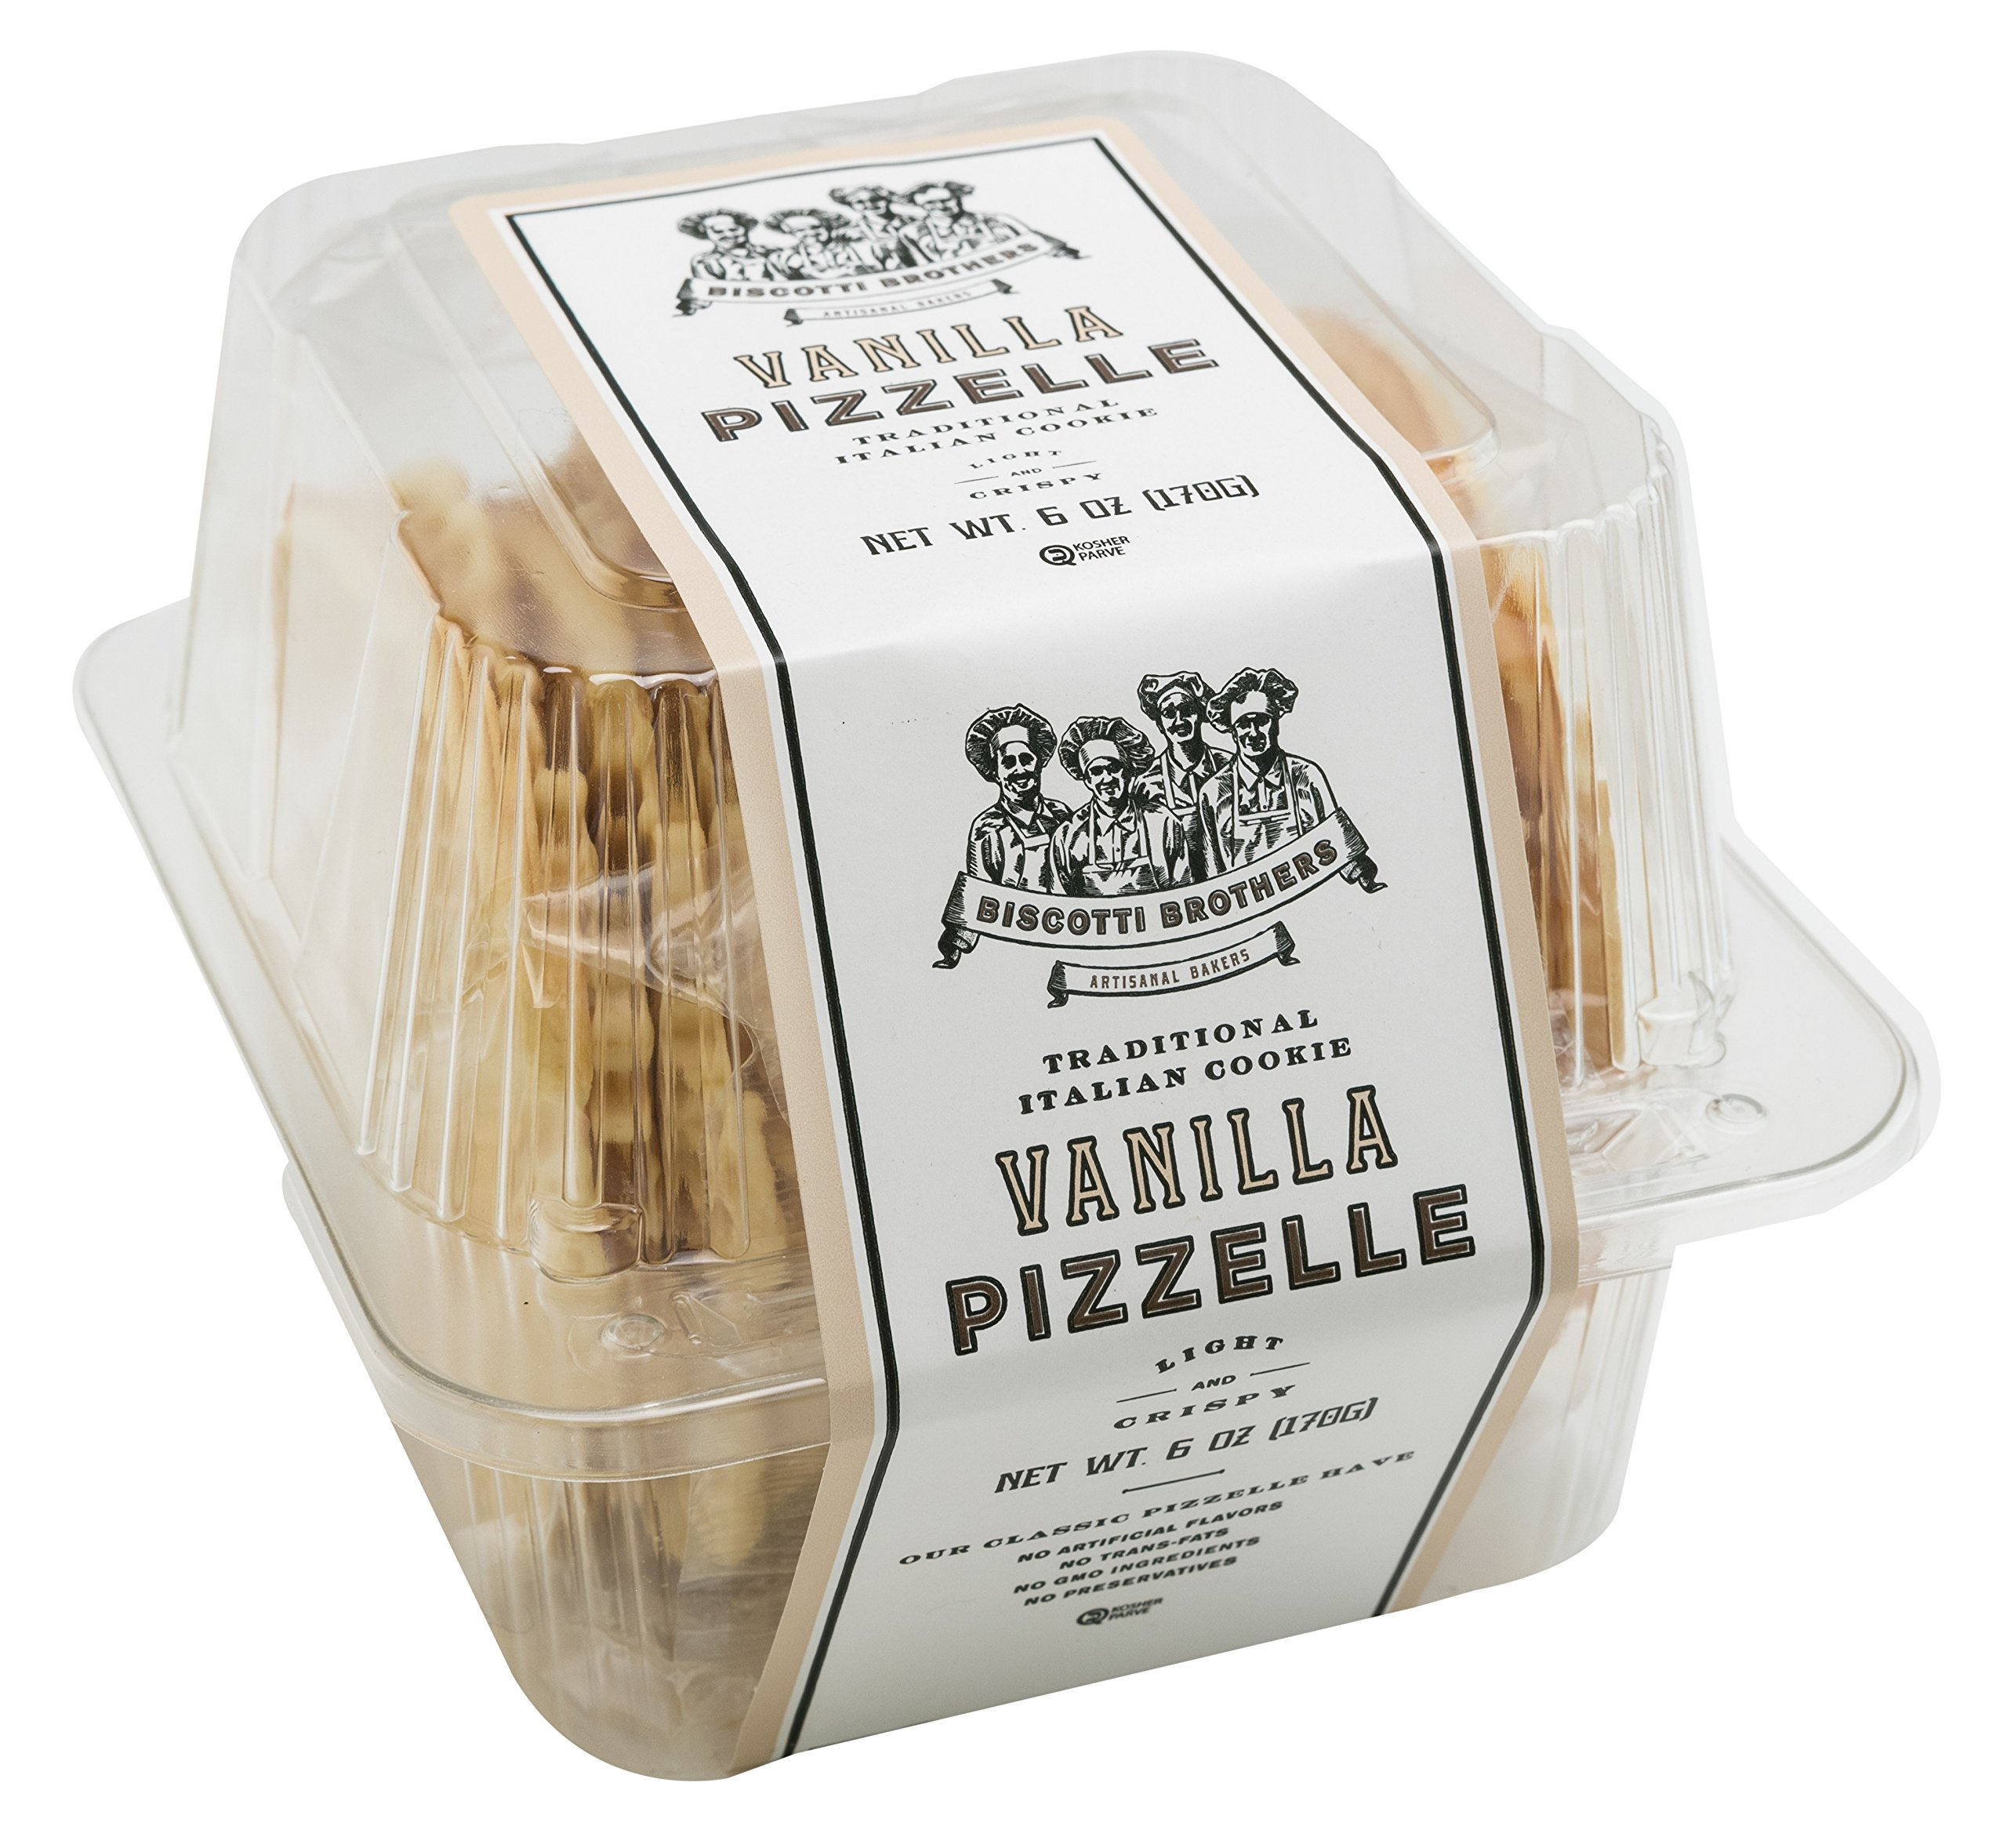 Amazon.com: Biscotti Brothers Bakery Pizzelle Cookie, Vanilla, 6 Ounce